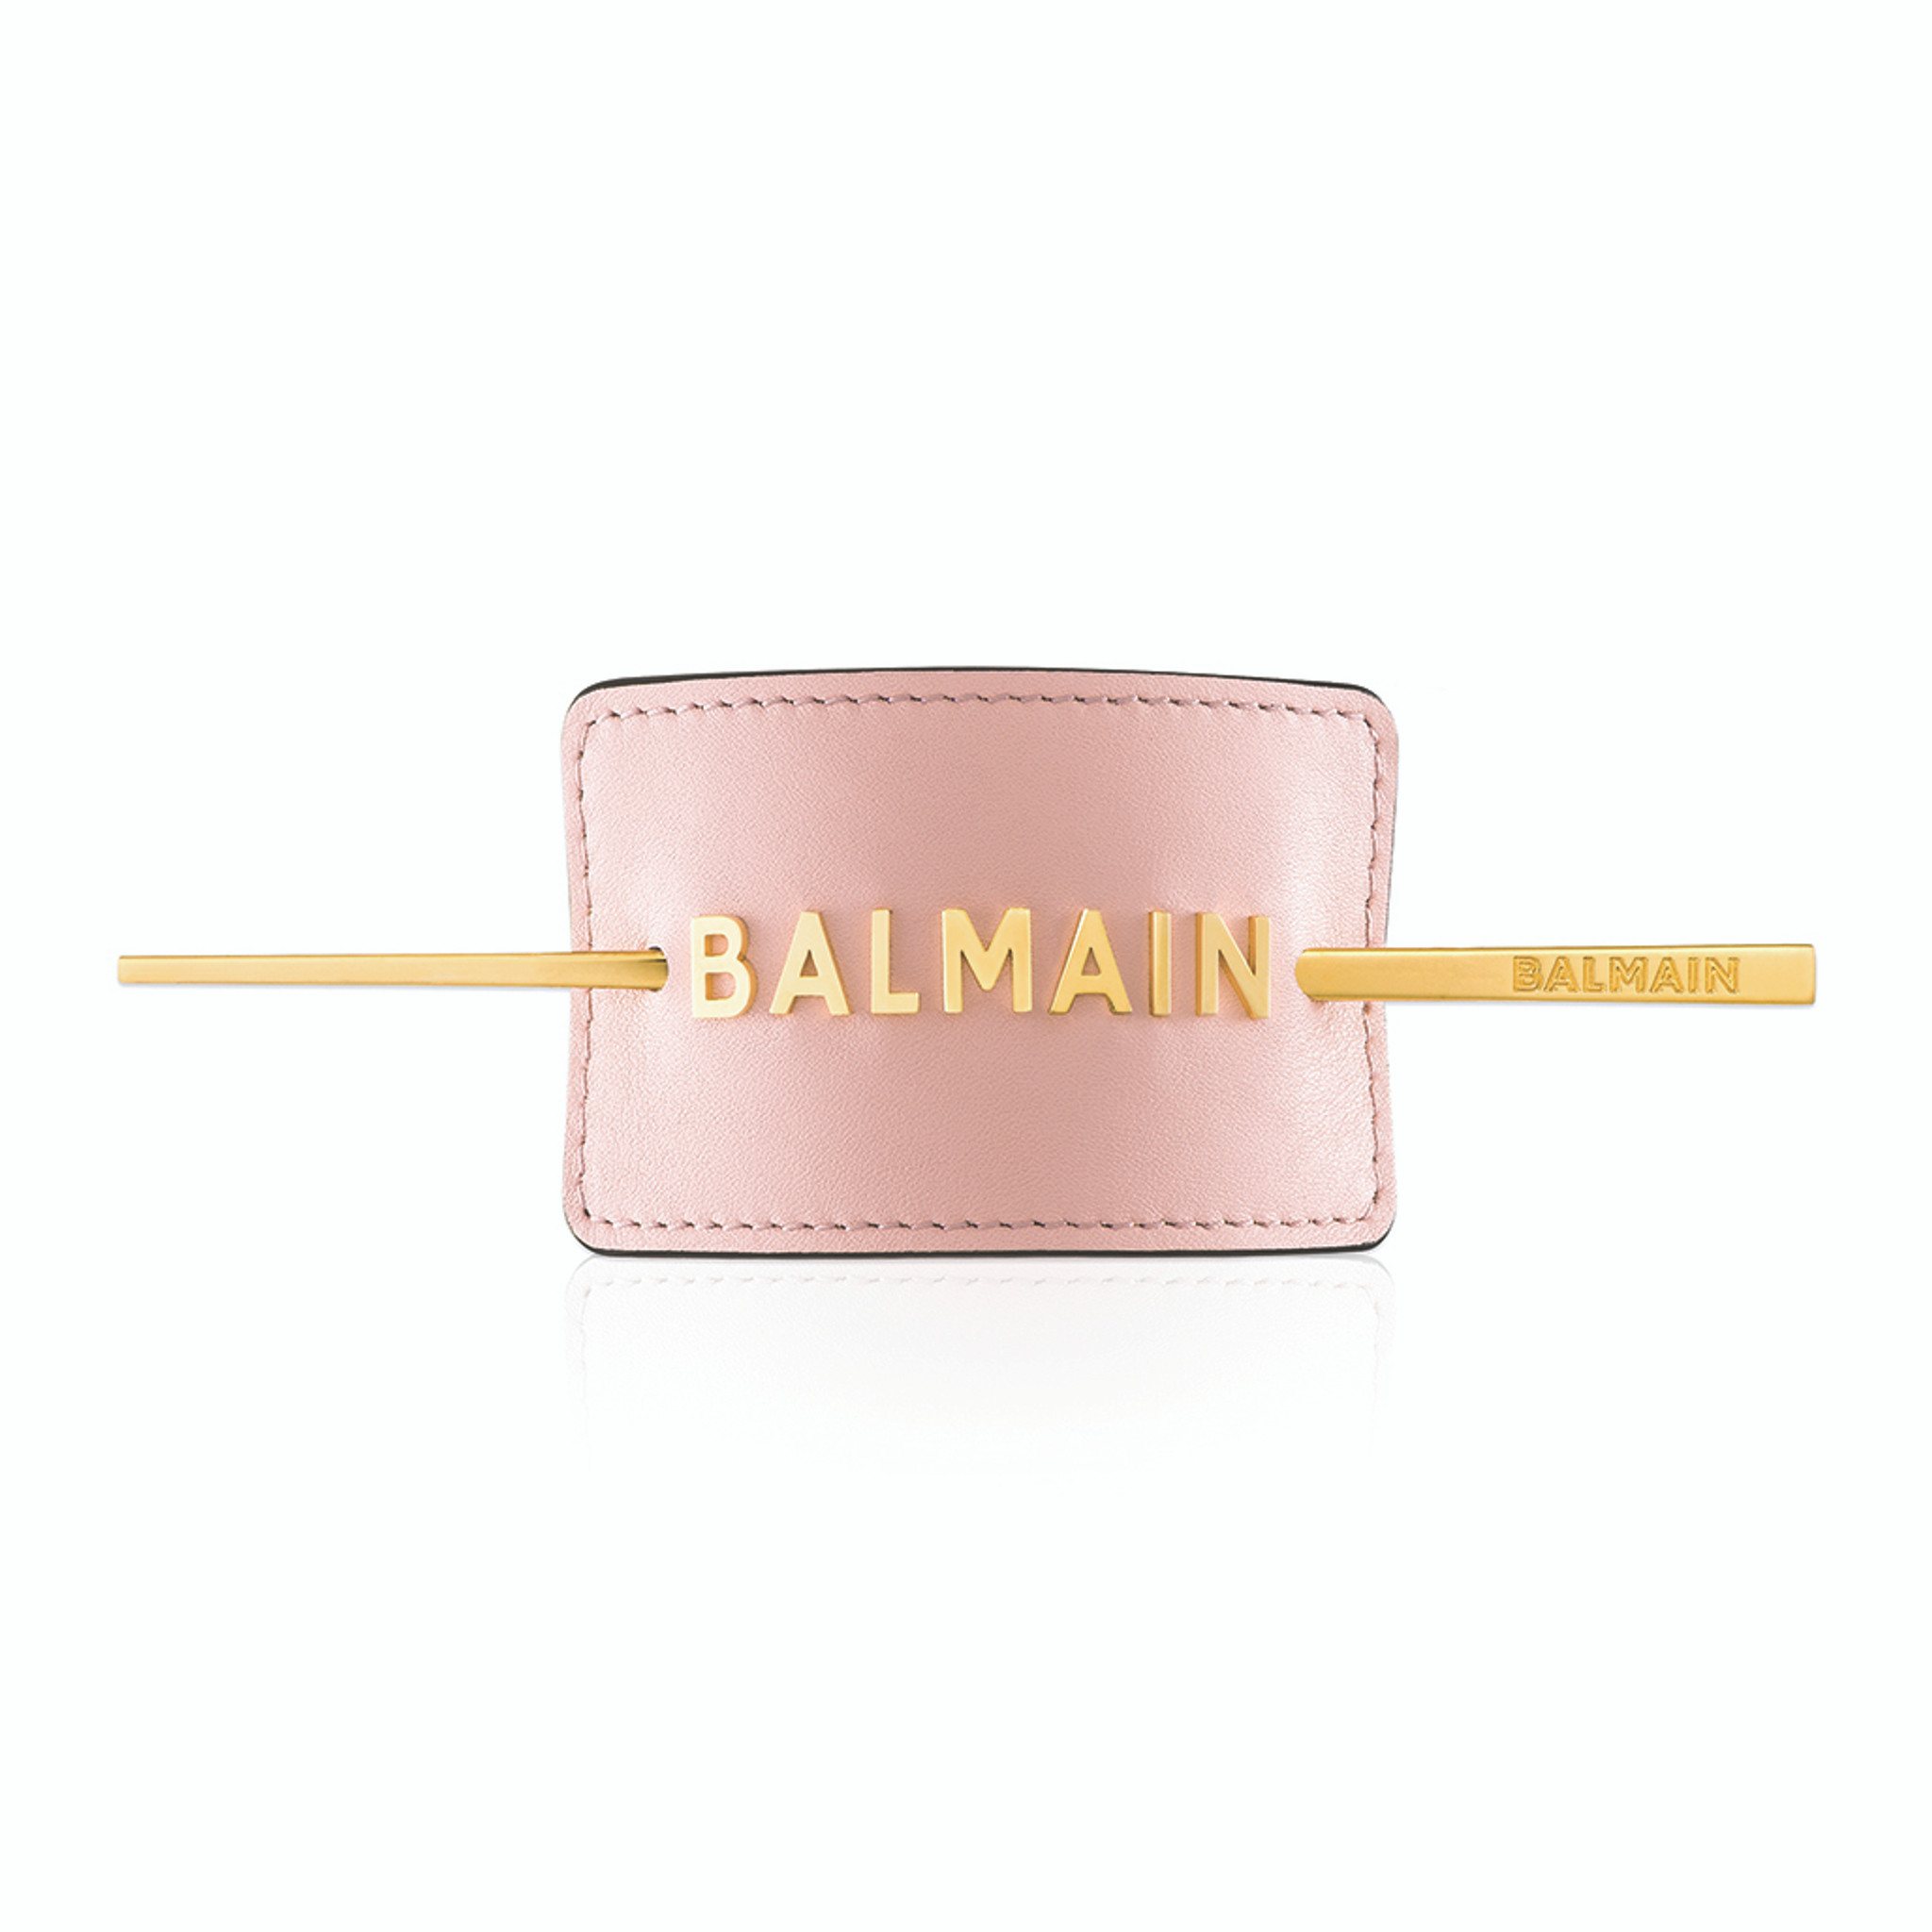 PASTEL PINK LUXURY HAIR BARRETTE WITH GOLDEN LOGO (Limited Edition SS20)